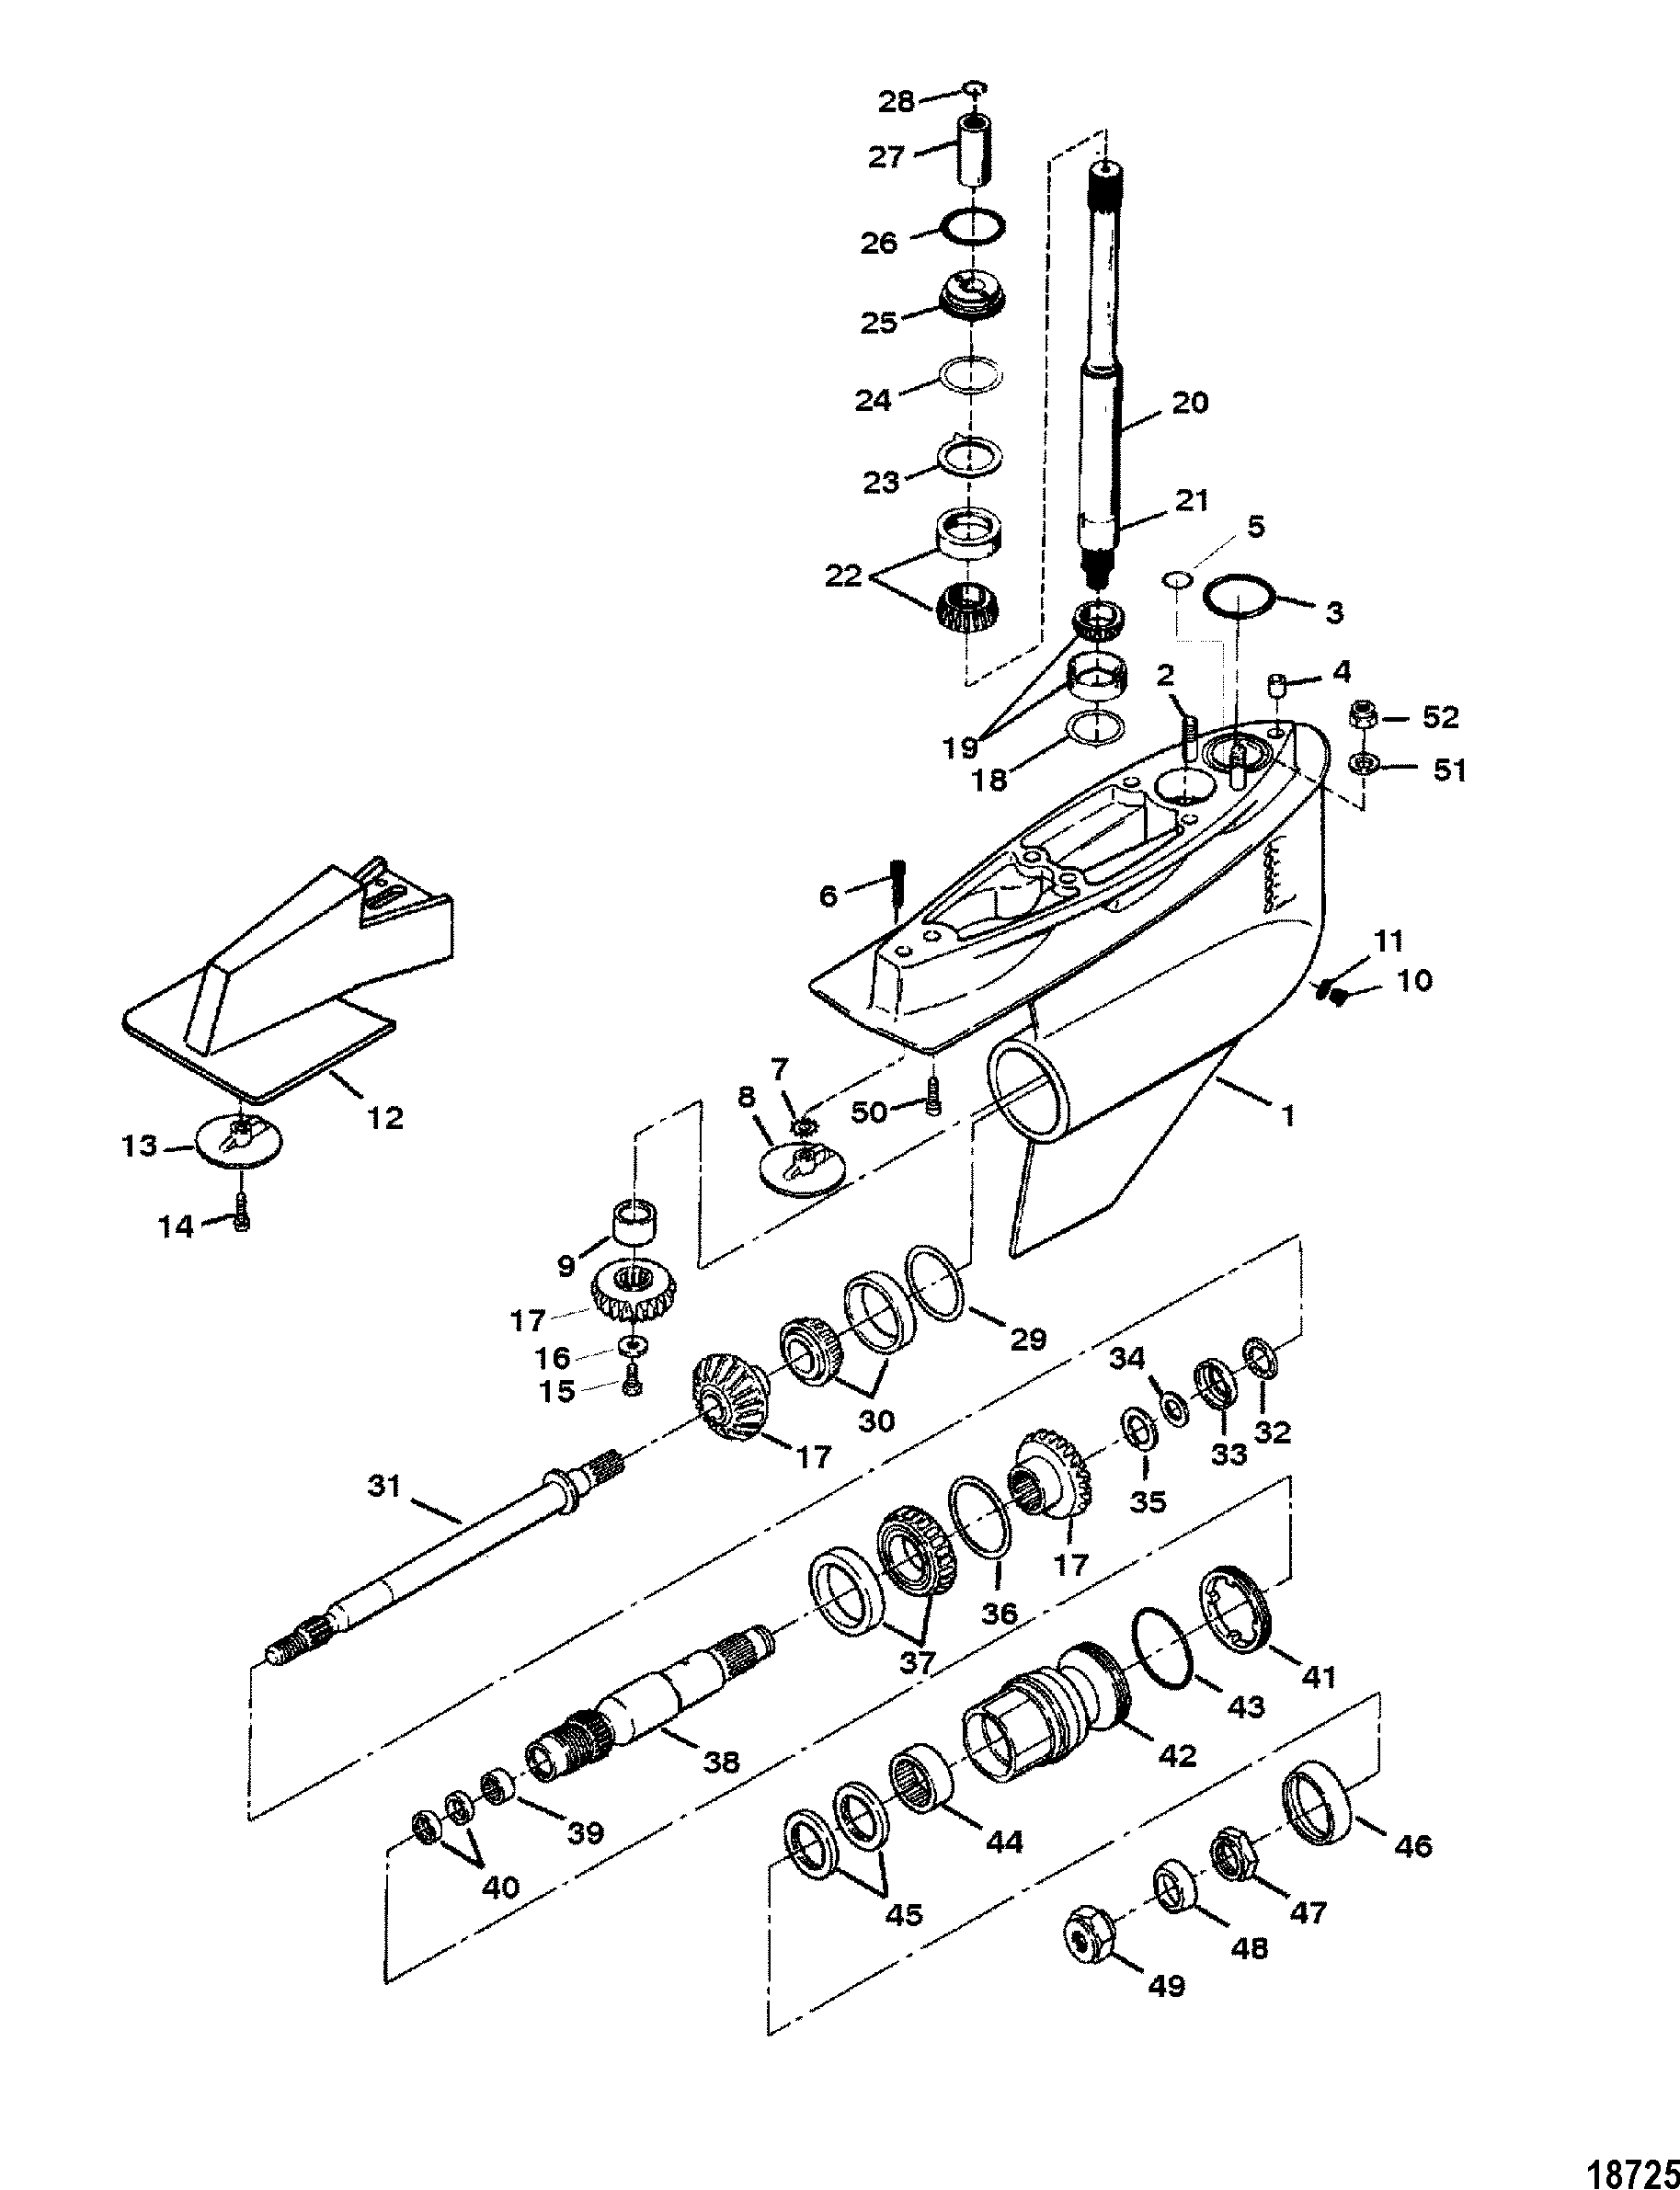 bravo 1 outdrive parts diagram pioneer deh p2900mp wiring cp performance gear housing iii